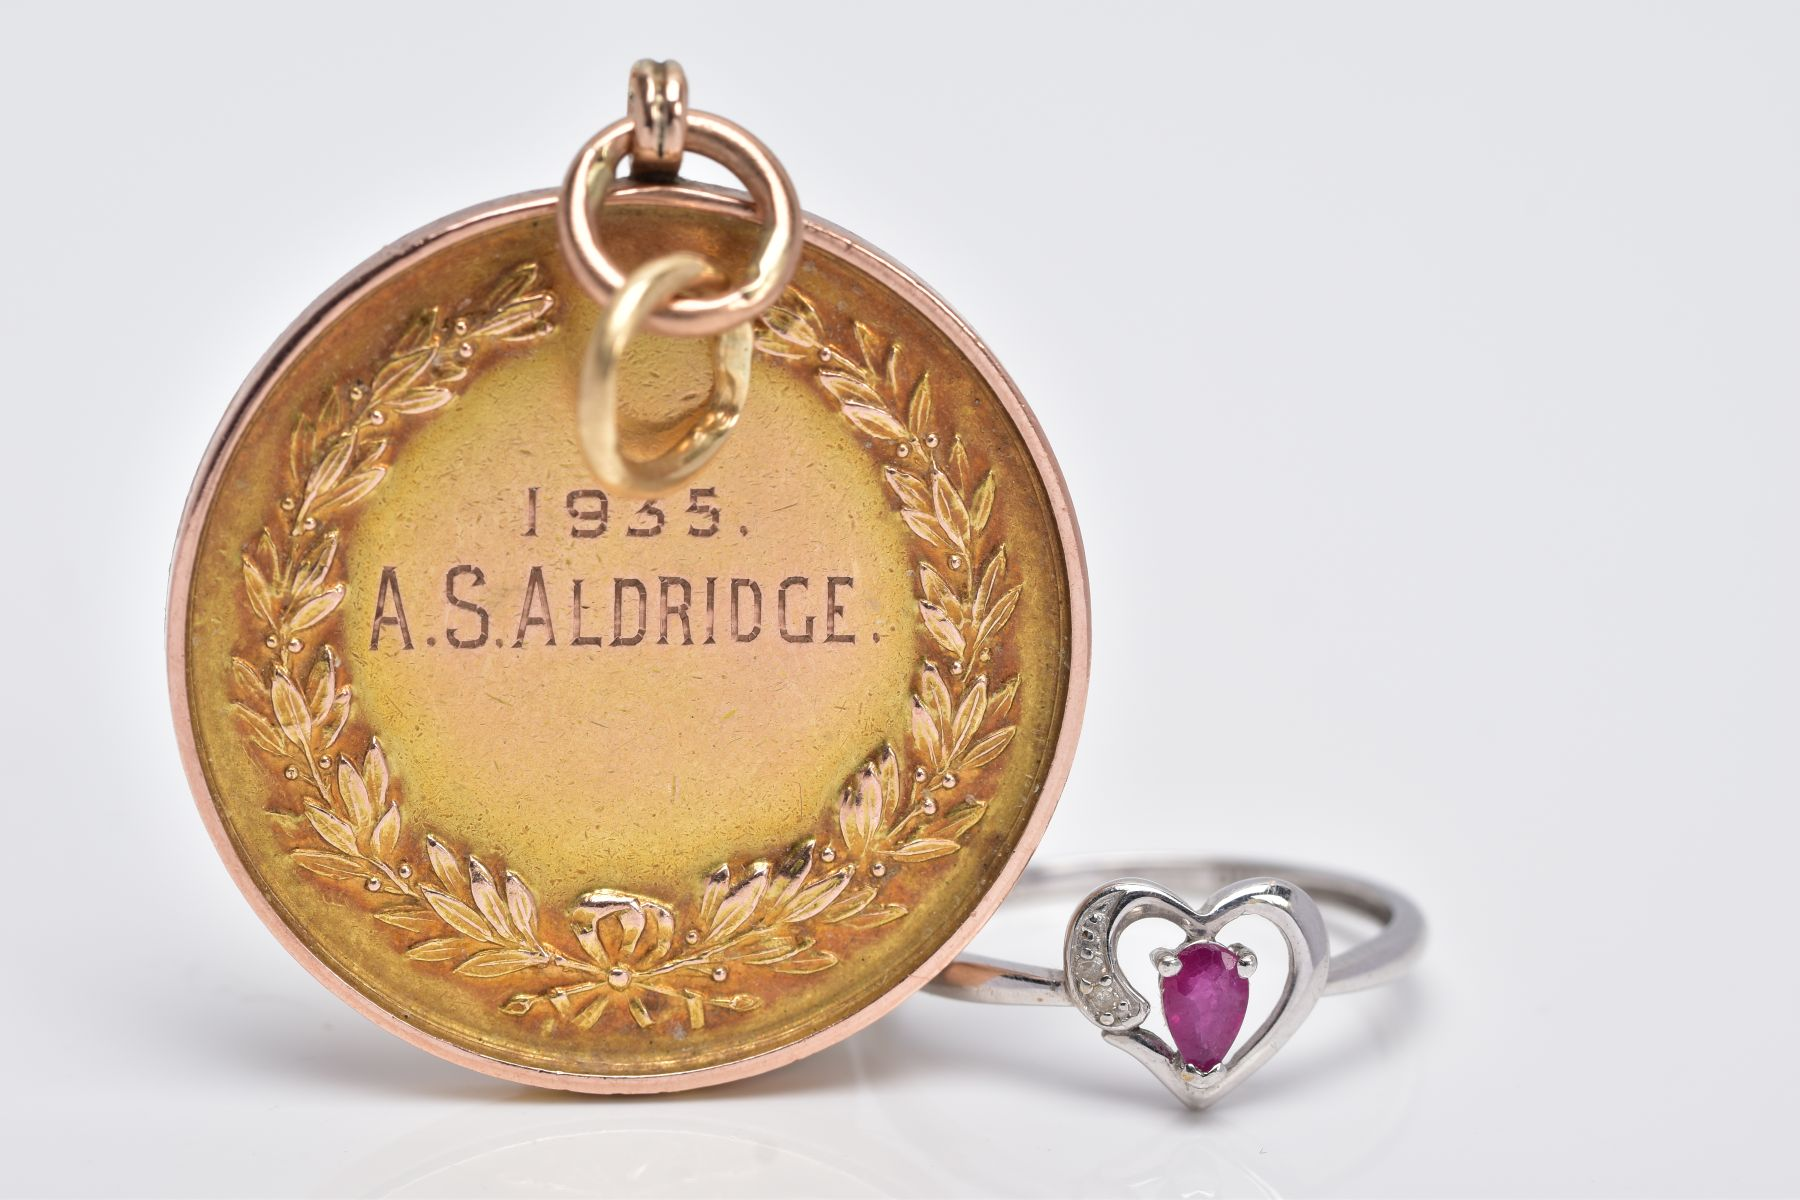 A 9CT GOLD MOUNTED MEDAL AND A 9CT WHITE GOLD RUBY AND DIAMOND RING, the medal of a circular form, - Image 2 of 4